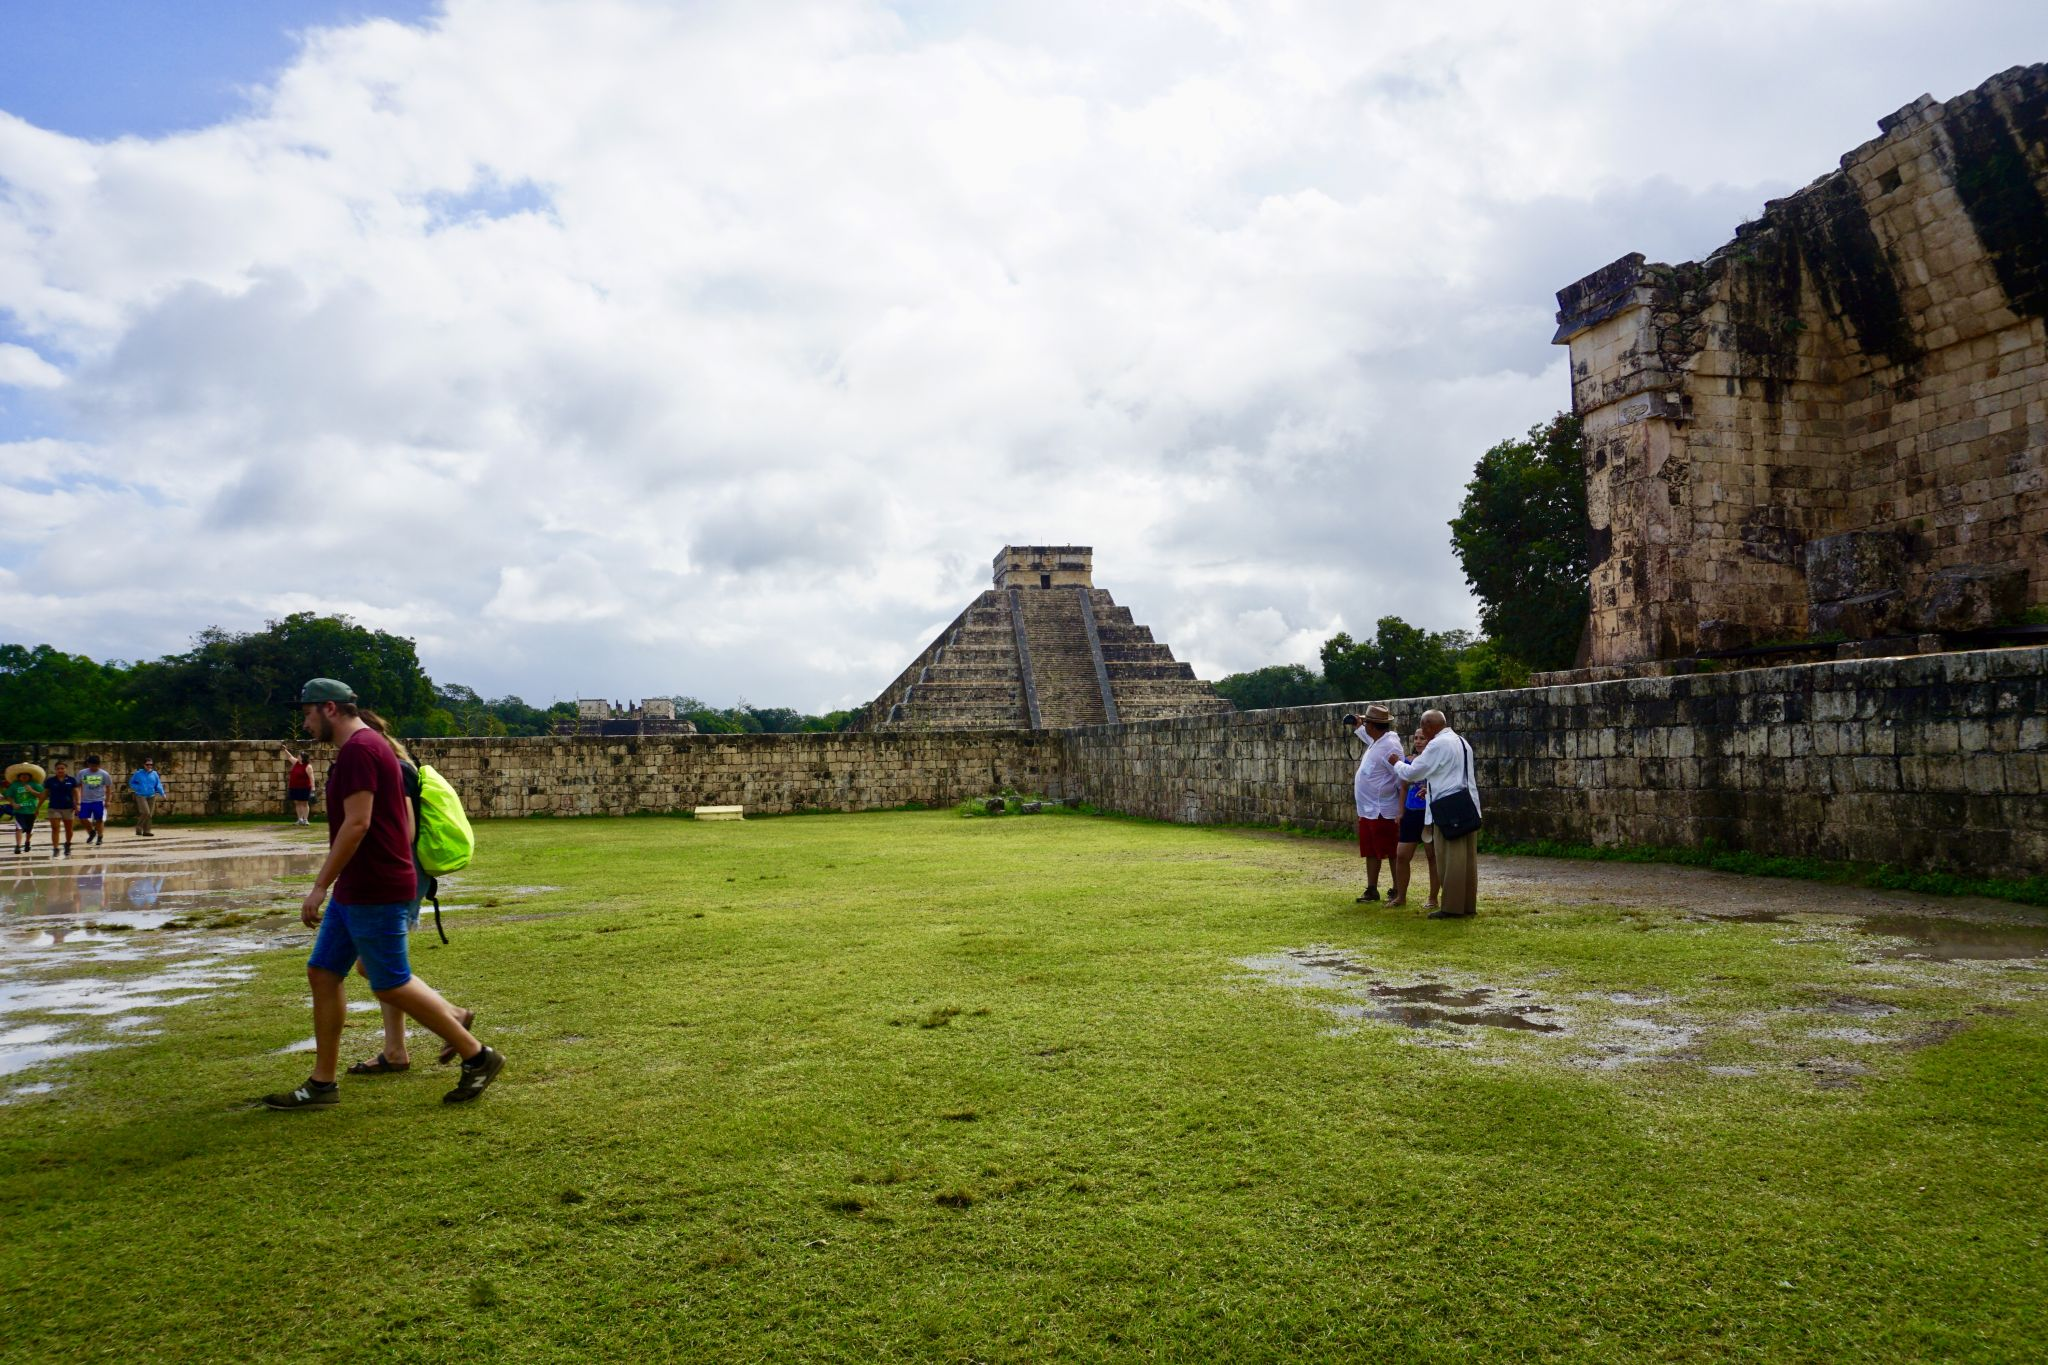 El Castillo seen from the Ball Court in Chichen Itzá